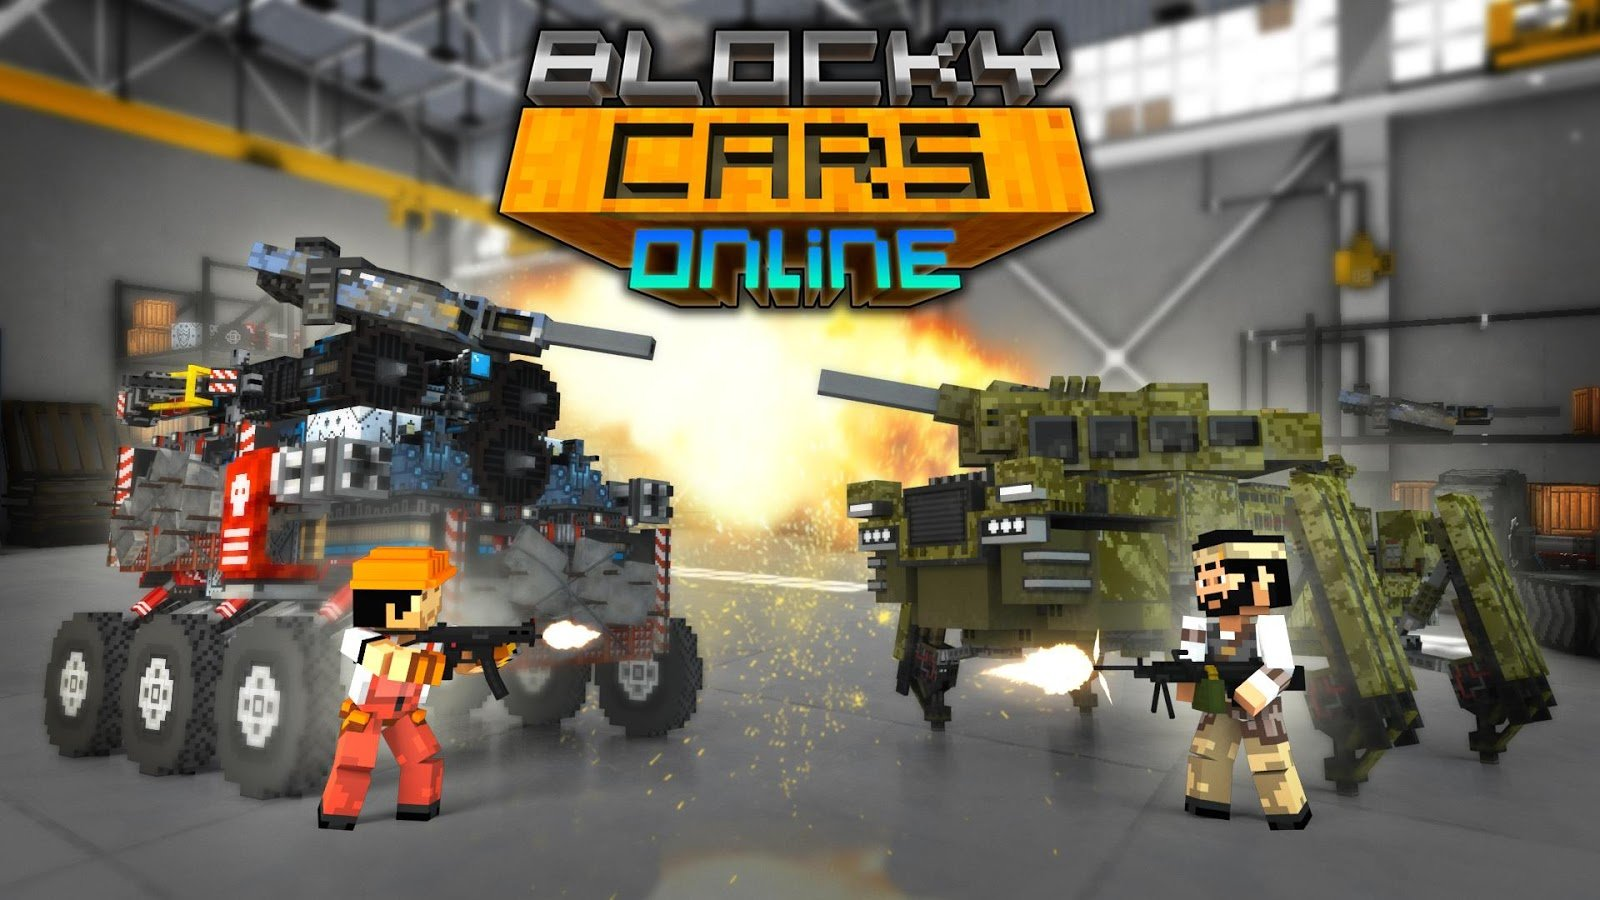 Blocky Cars Online - as close to Lego Racers as I can hope for (Review)